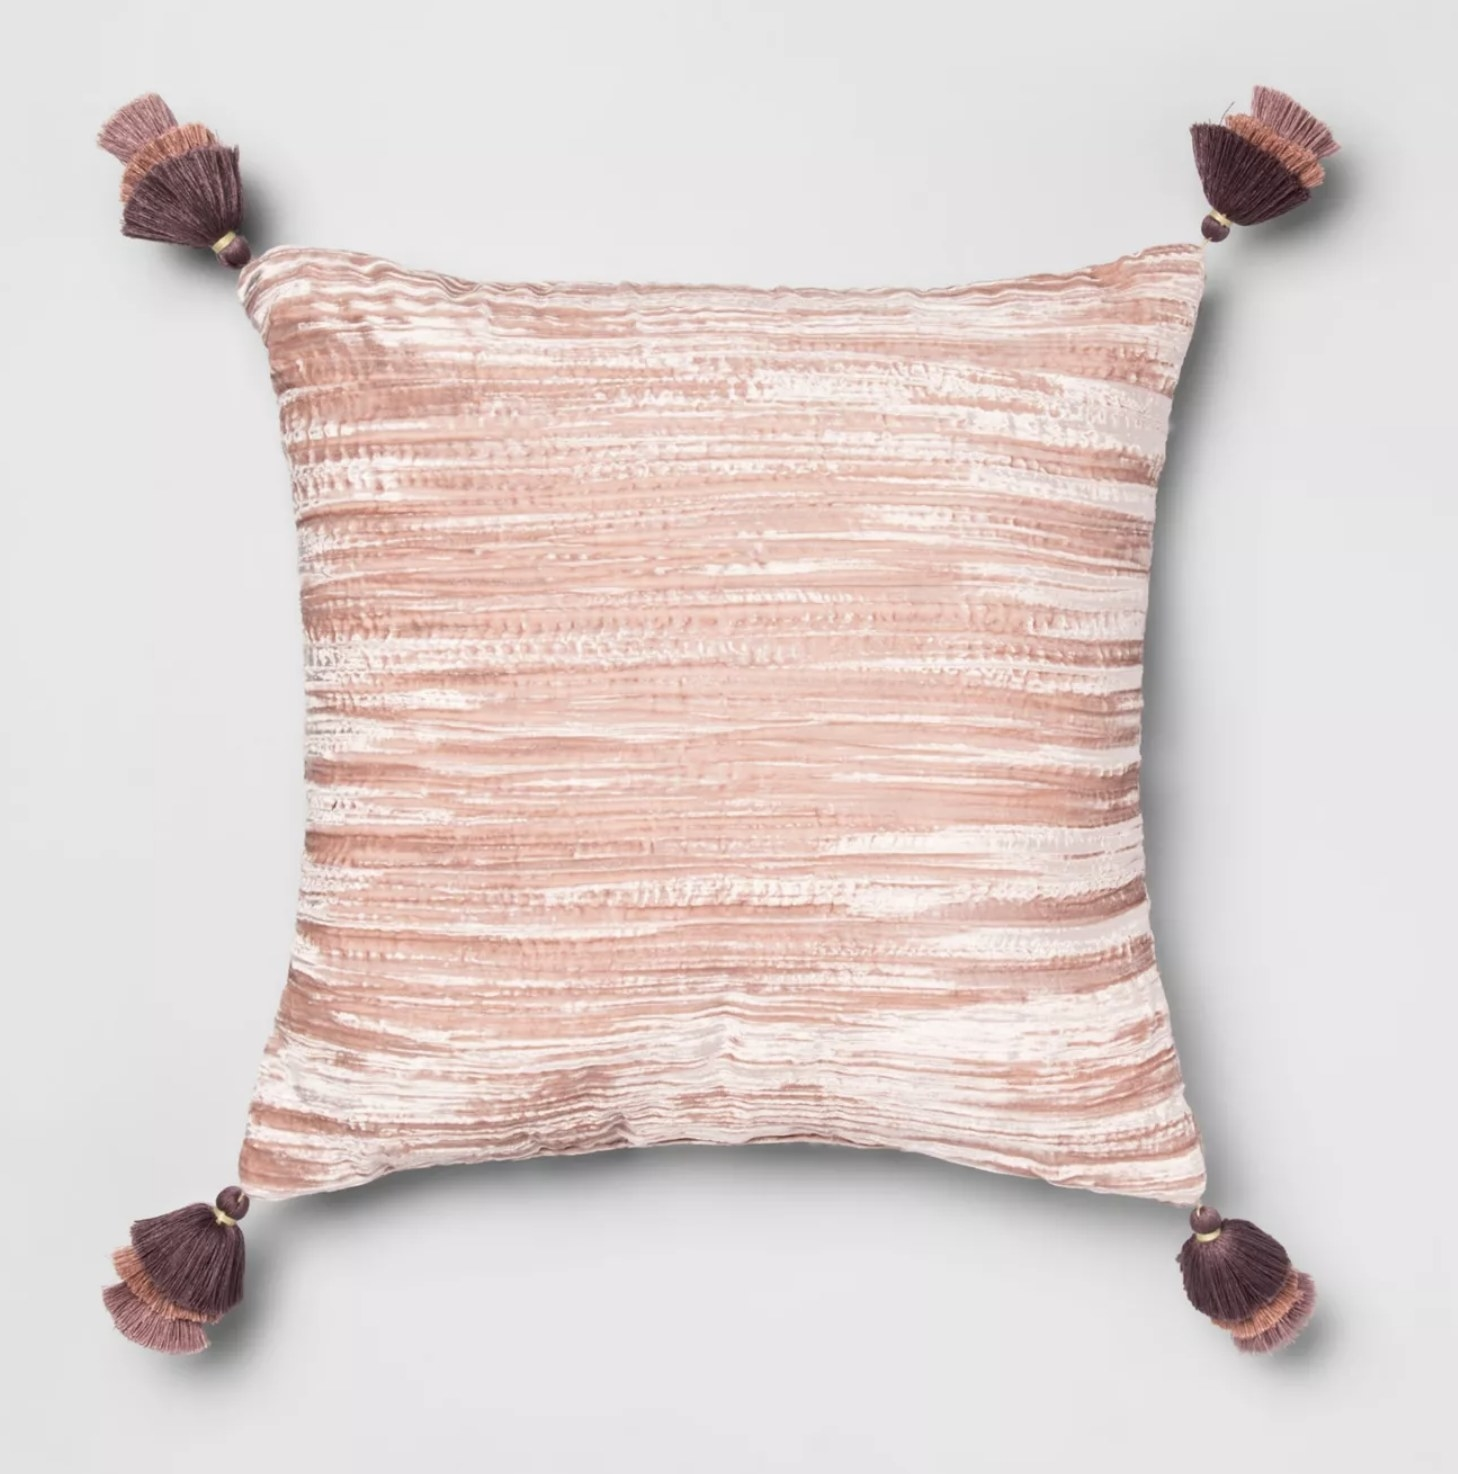 A pink velvet throw pillow with purple tassels